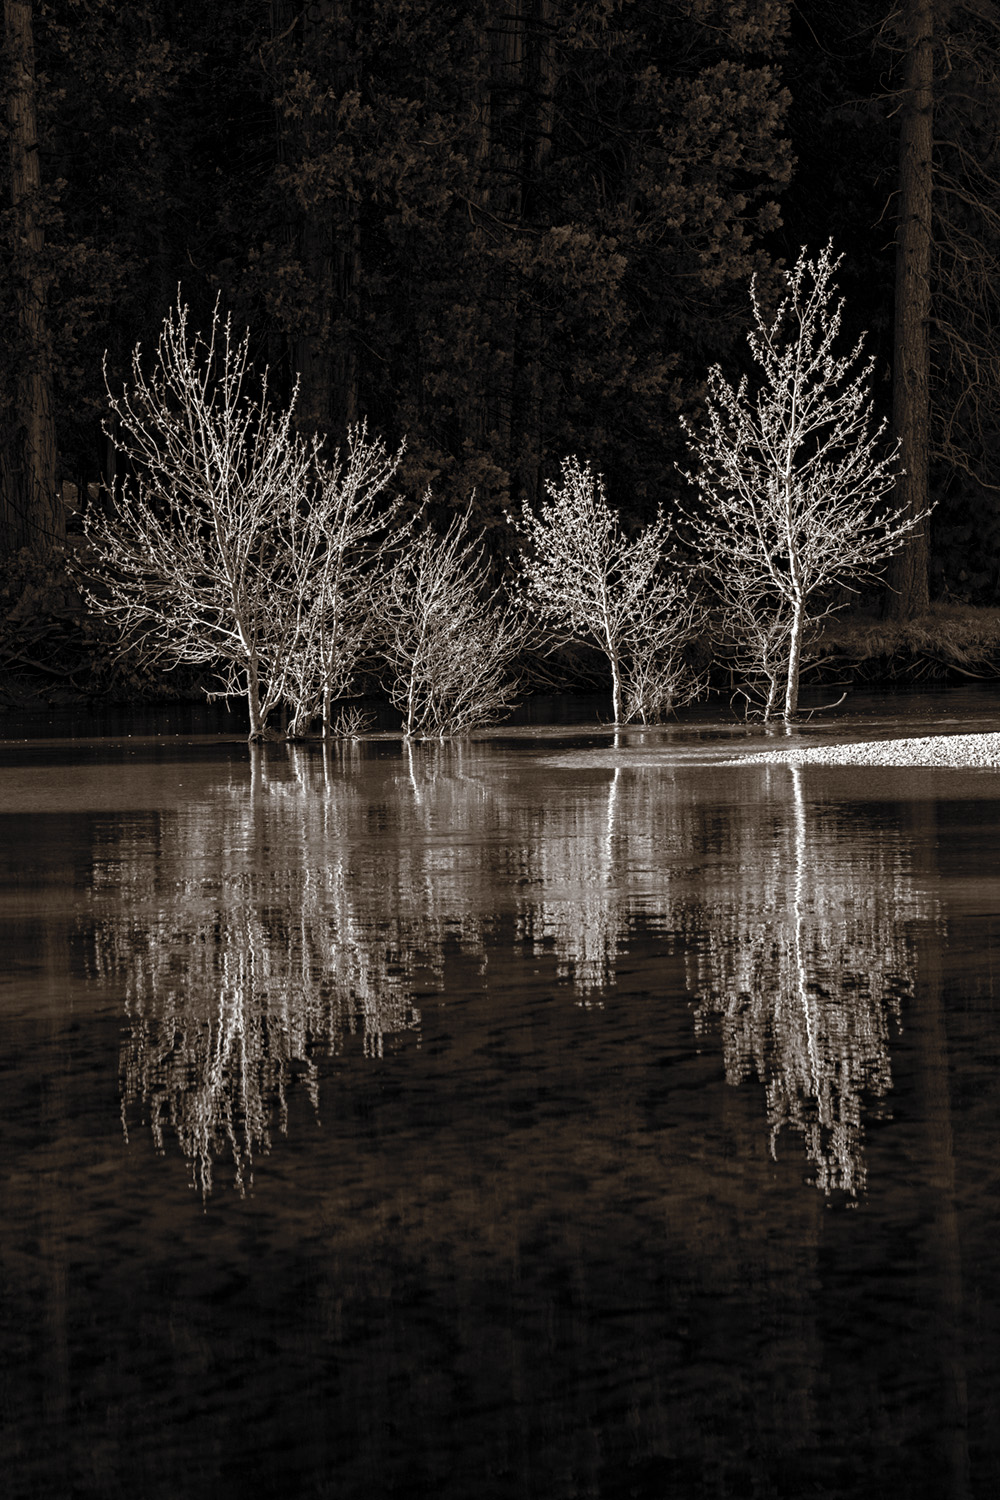 Reflections on the Merced